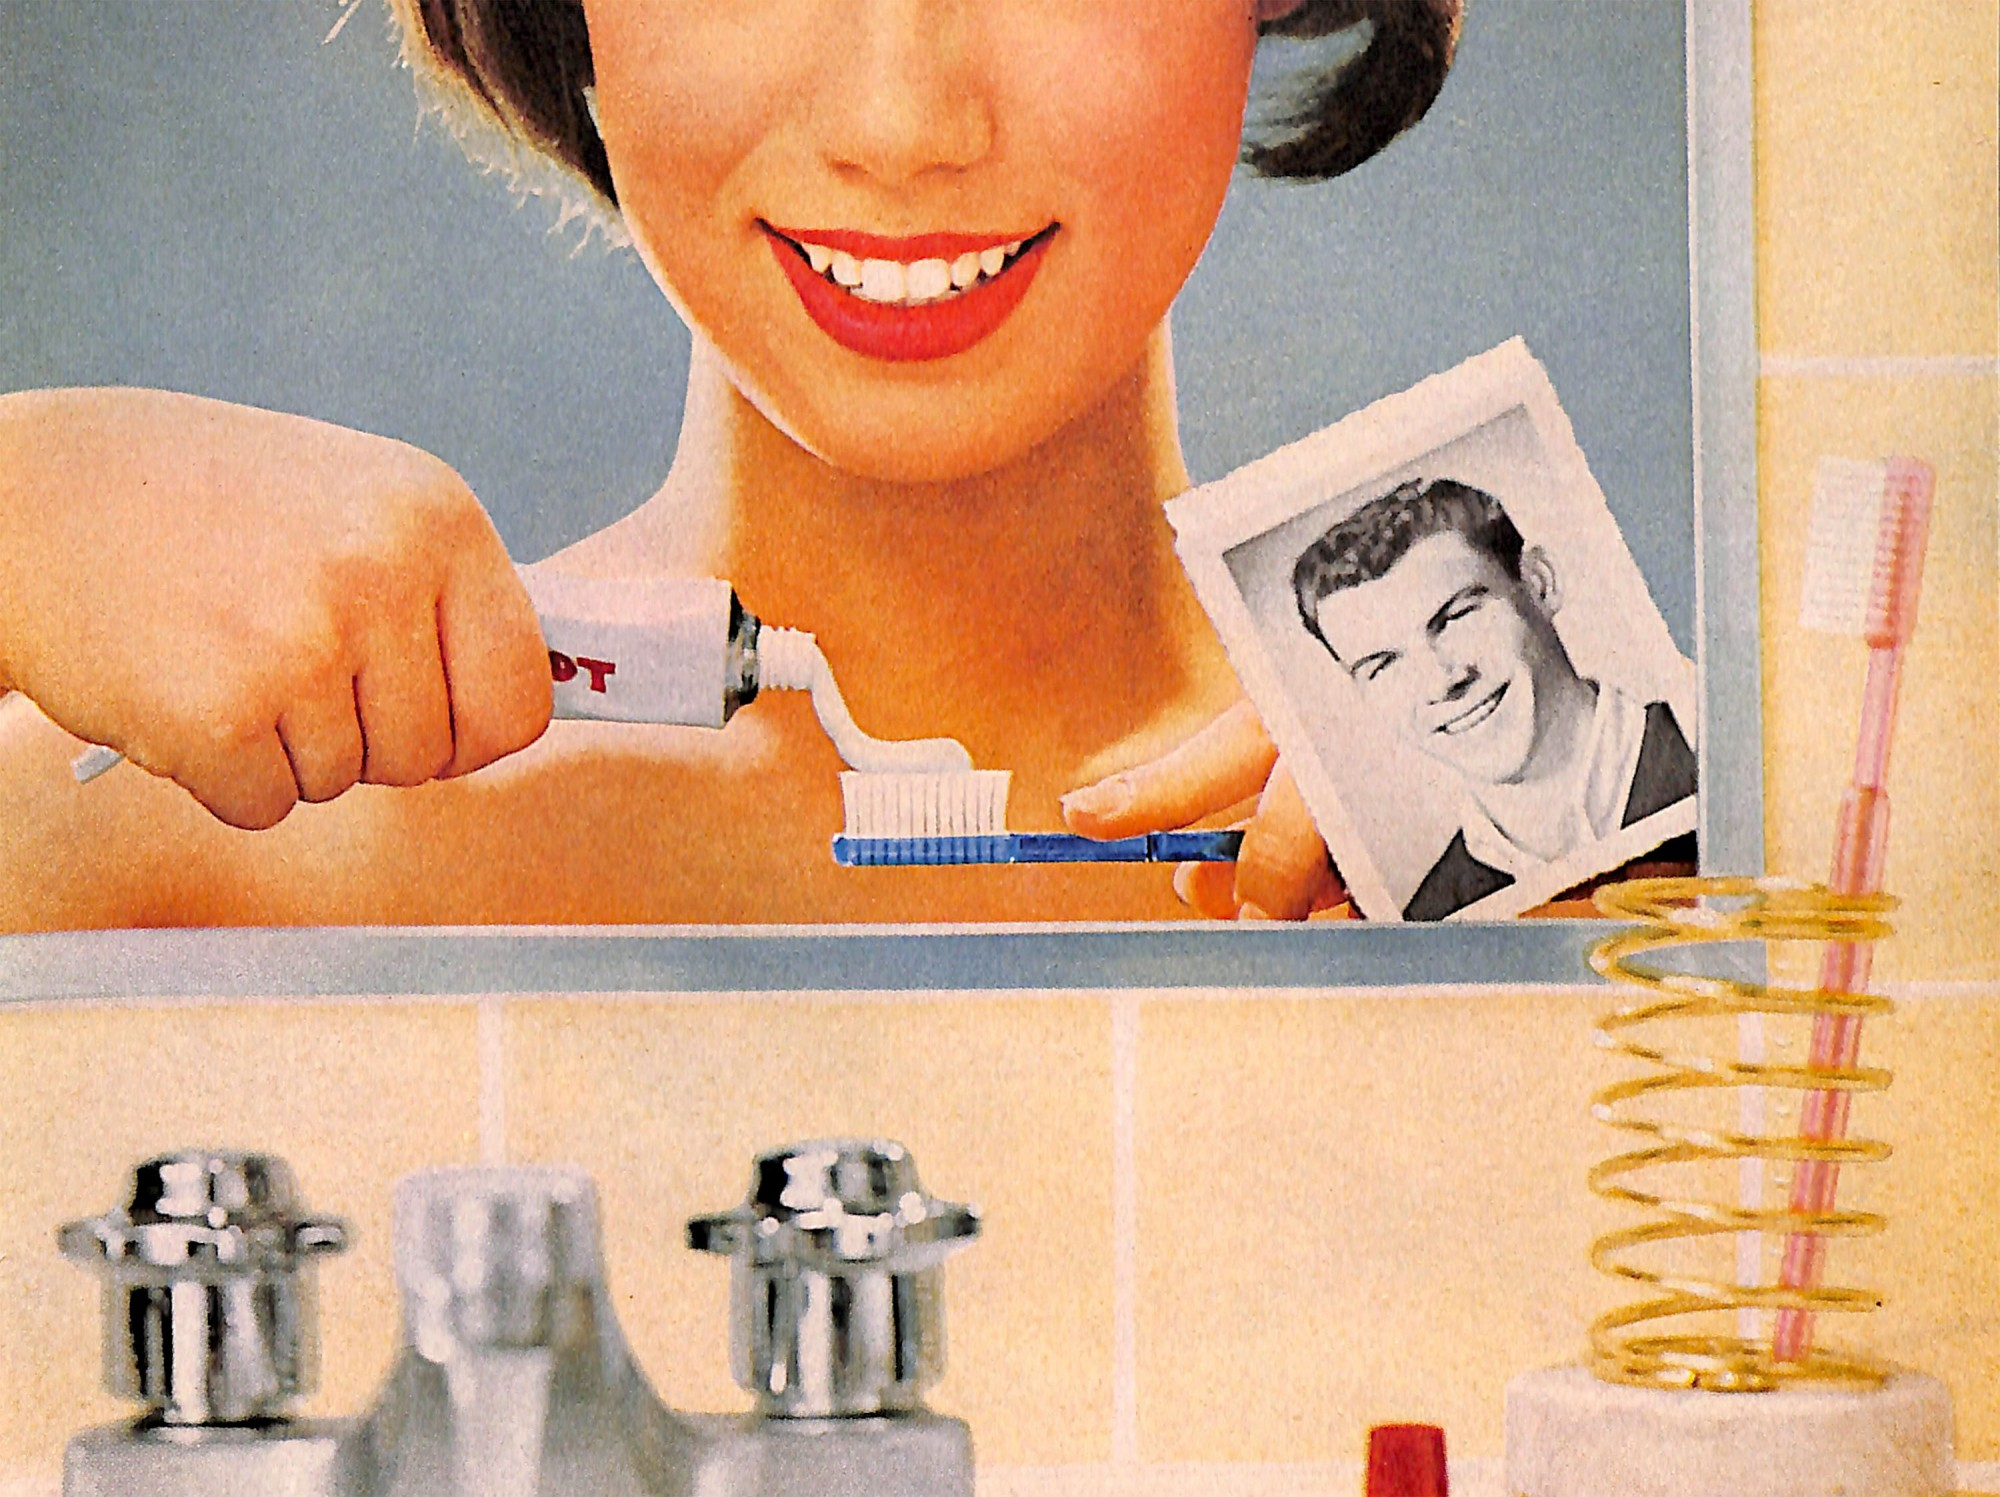 Smiling face in mirror 1960s